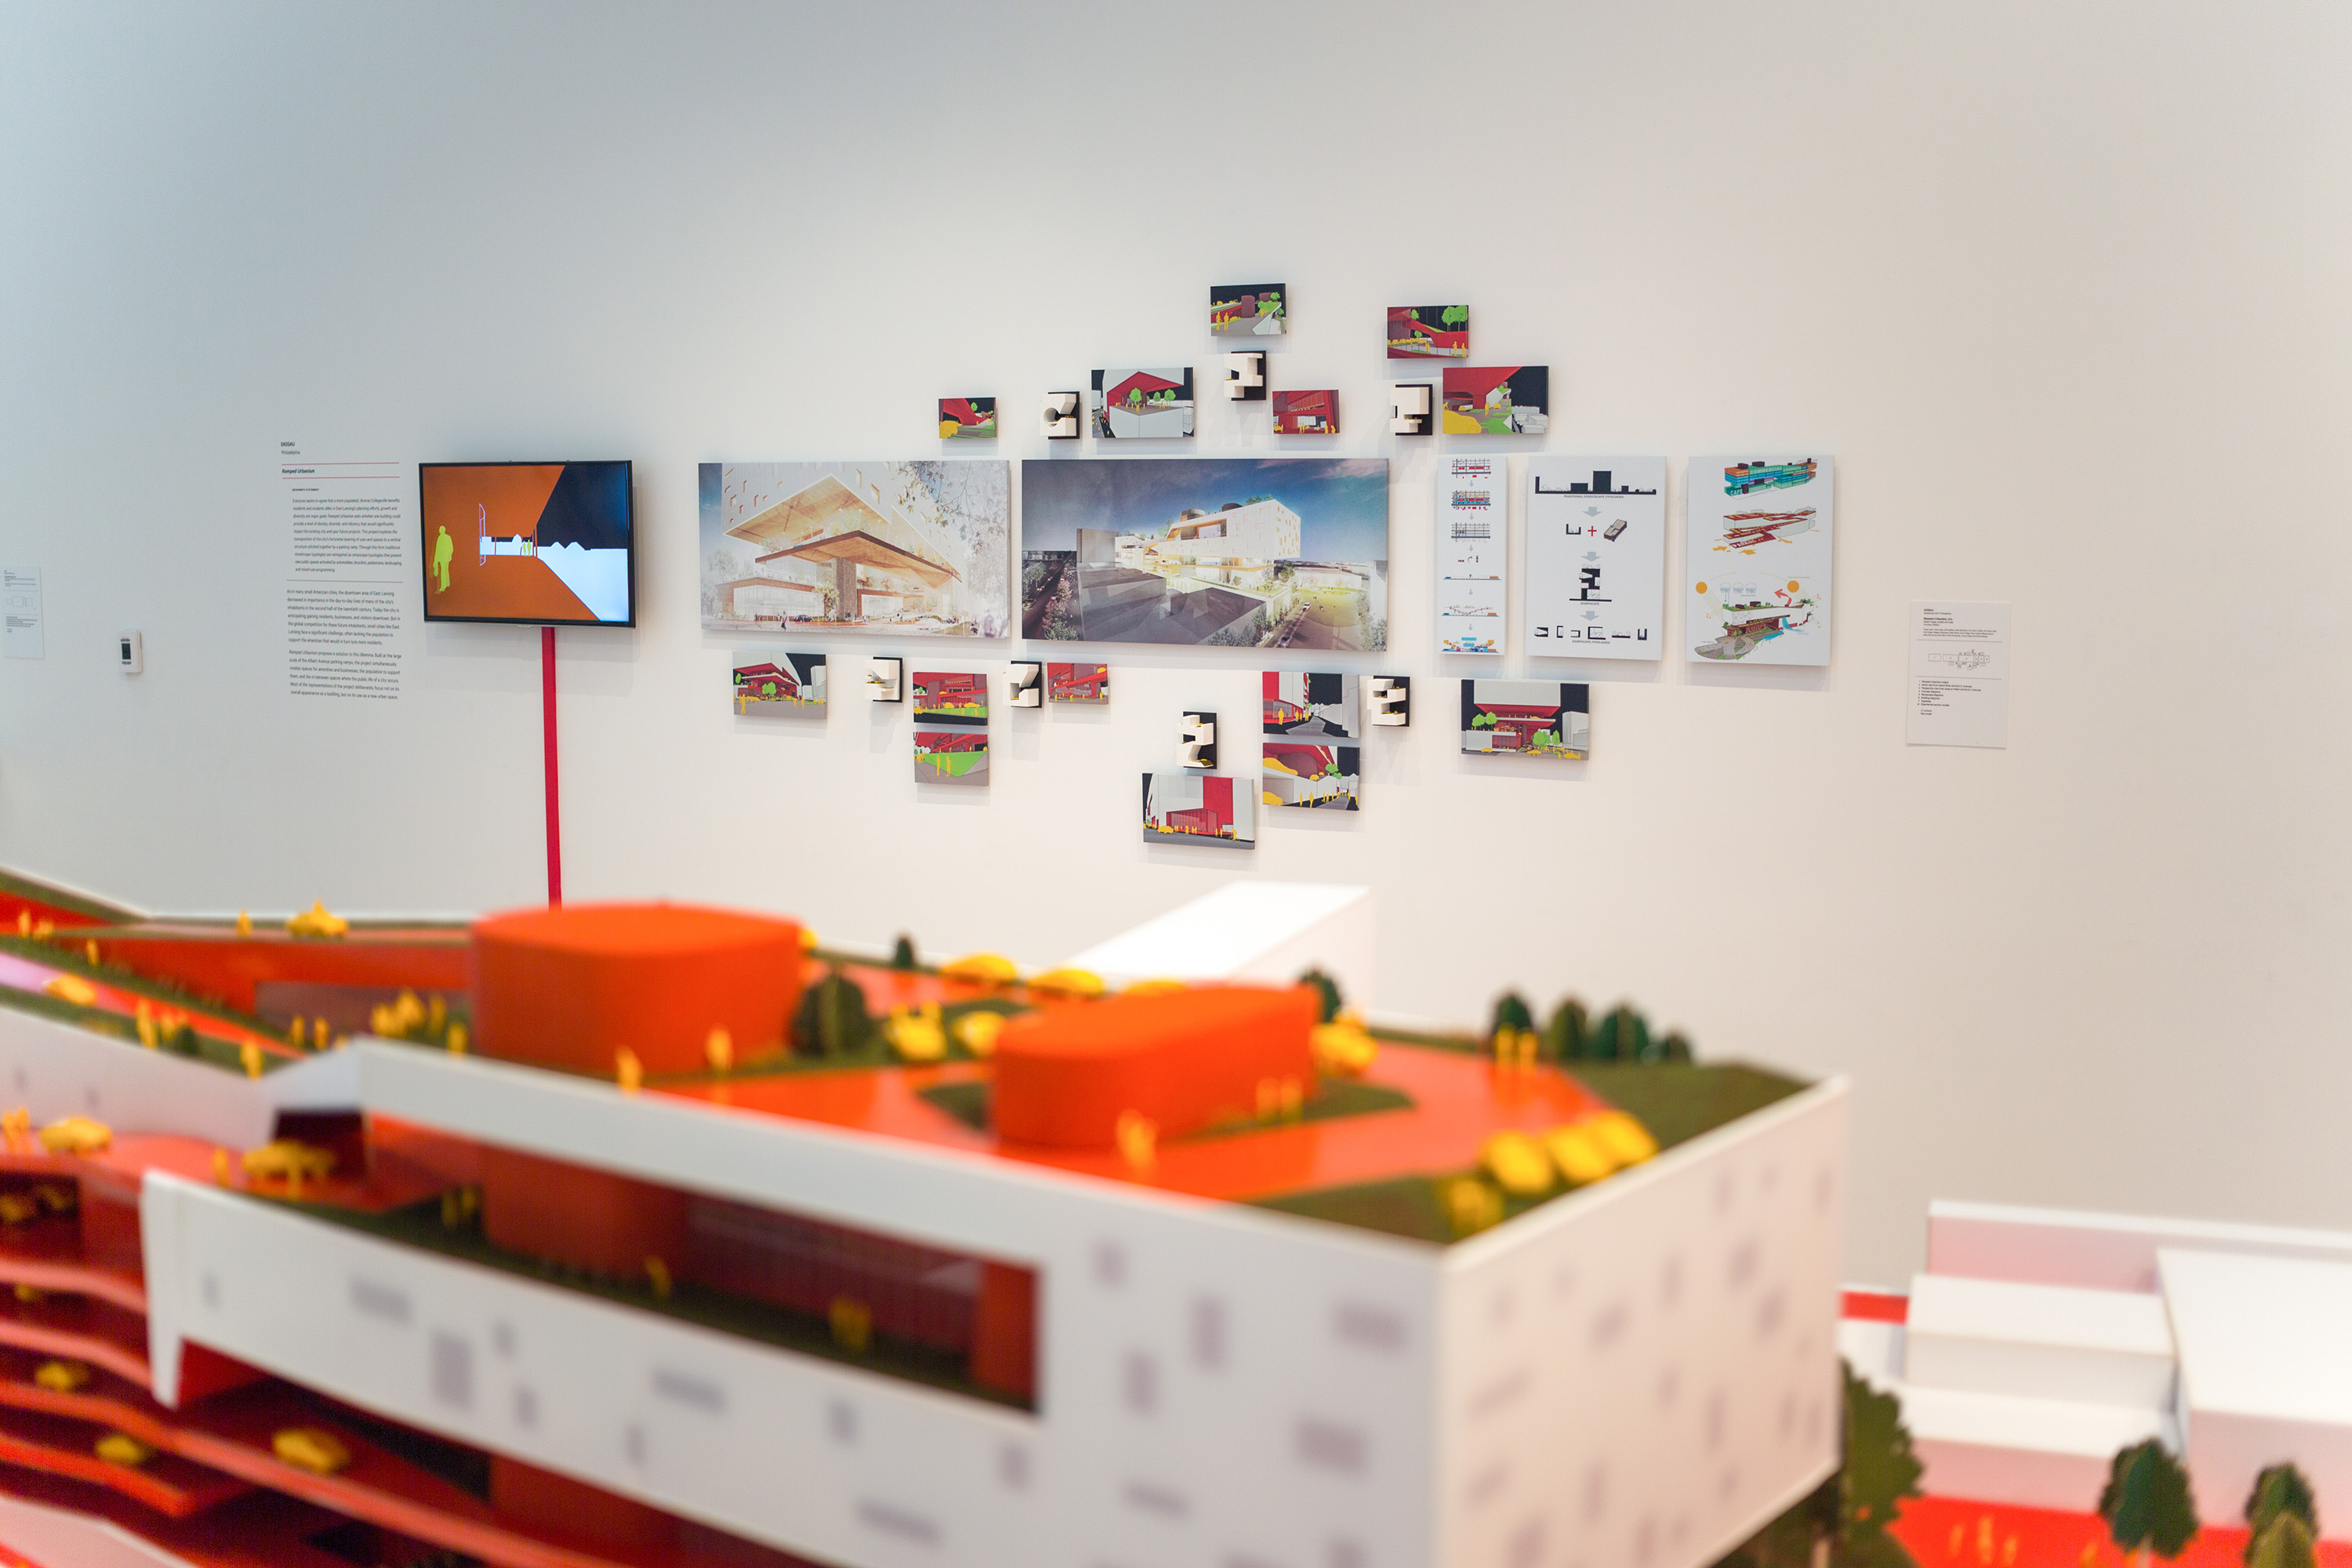 <i>East Lansing 2030 | Collegeville Re-Envisioned</i>, installation view at the Eli and Edythe Broad Art Museum at Michigan State University, 2014. Photo: MSU Broad